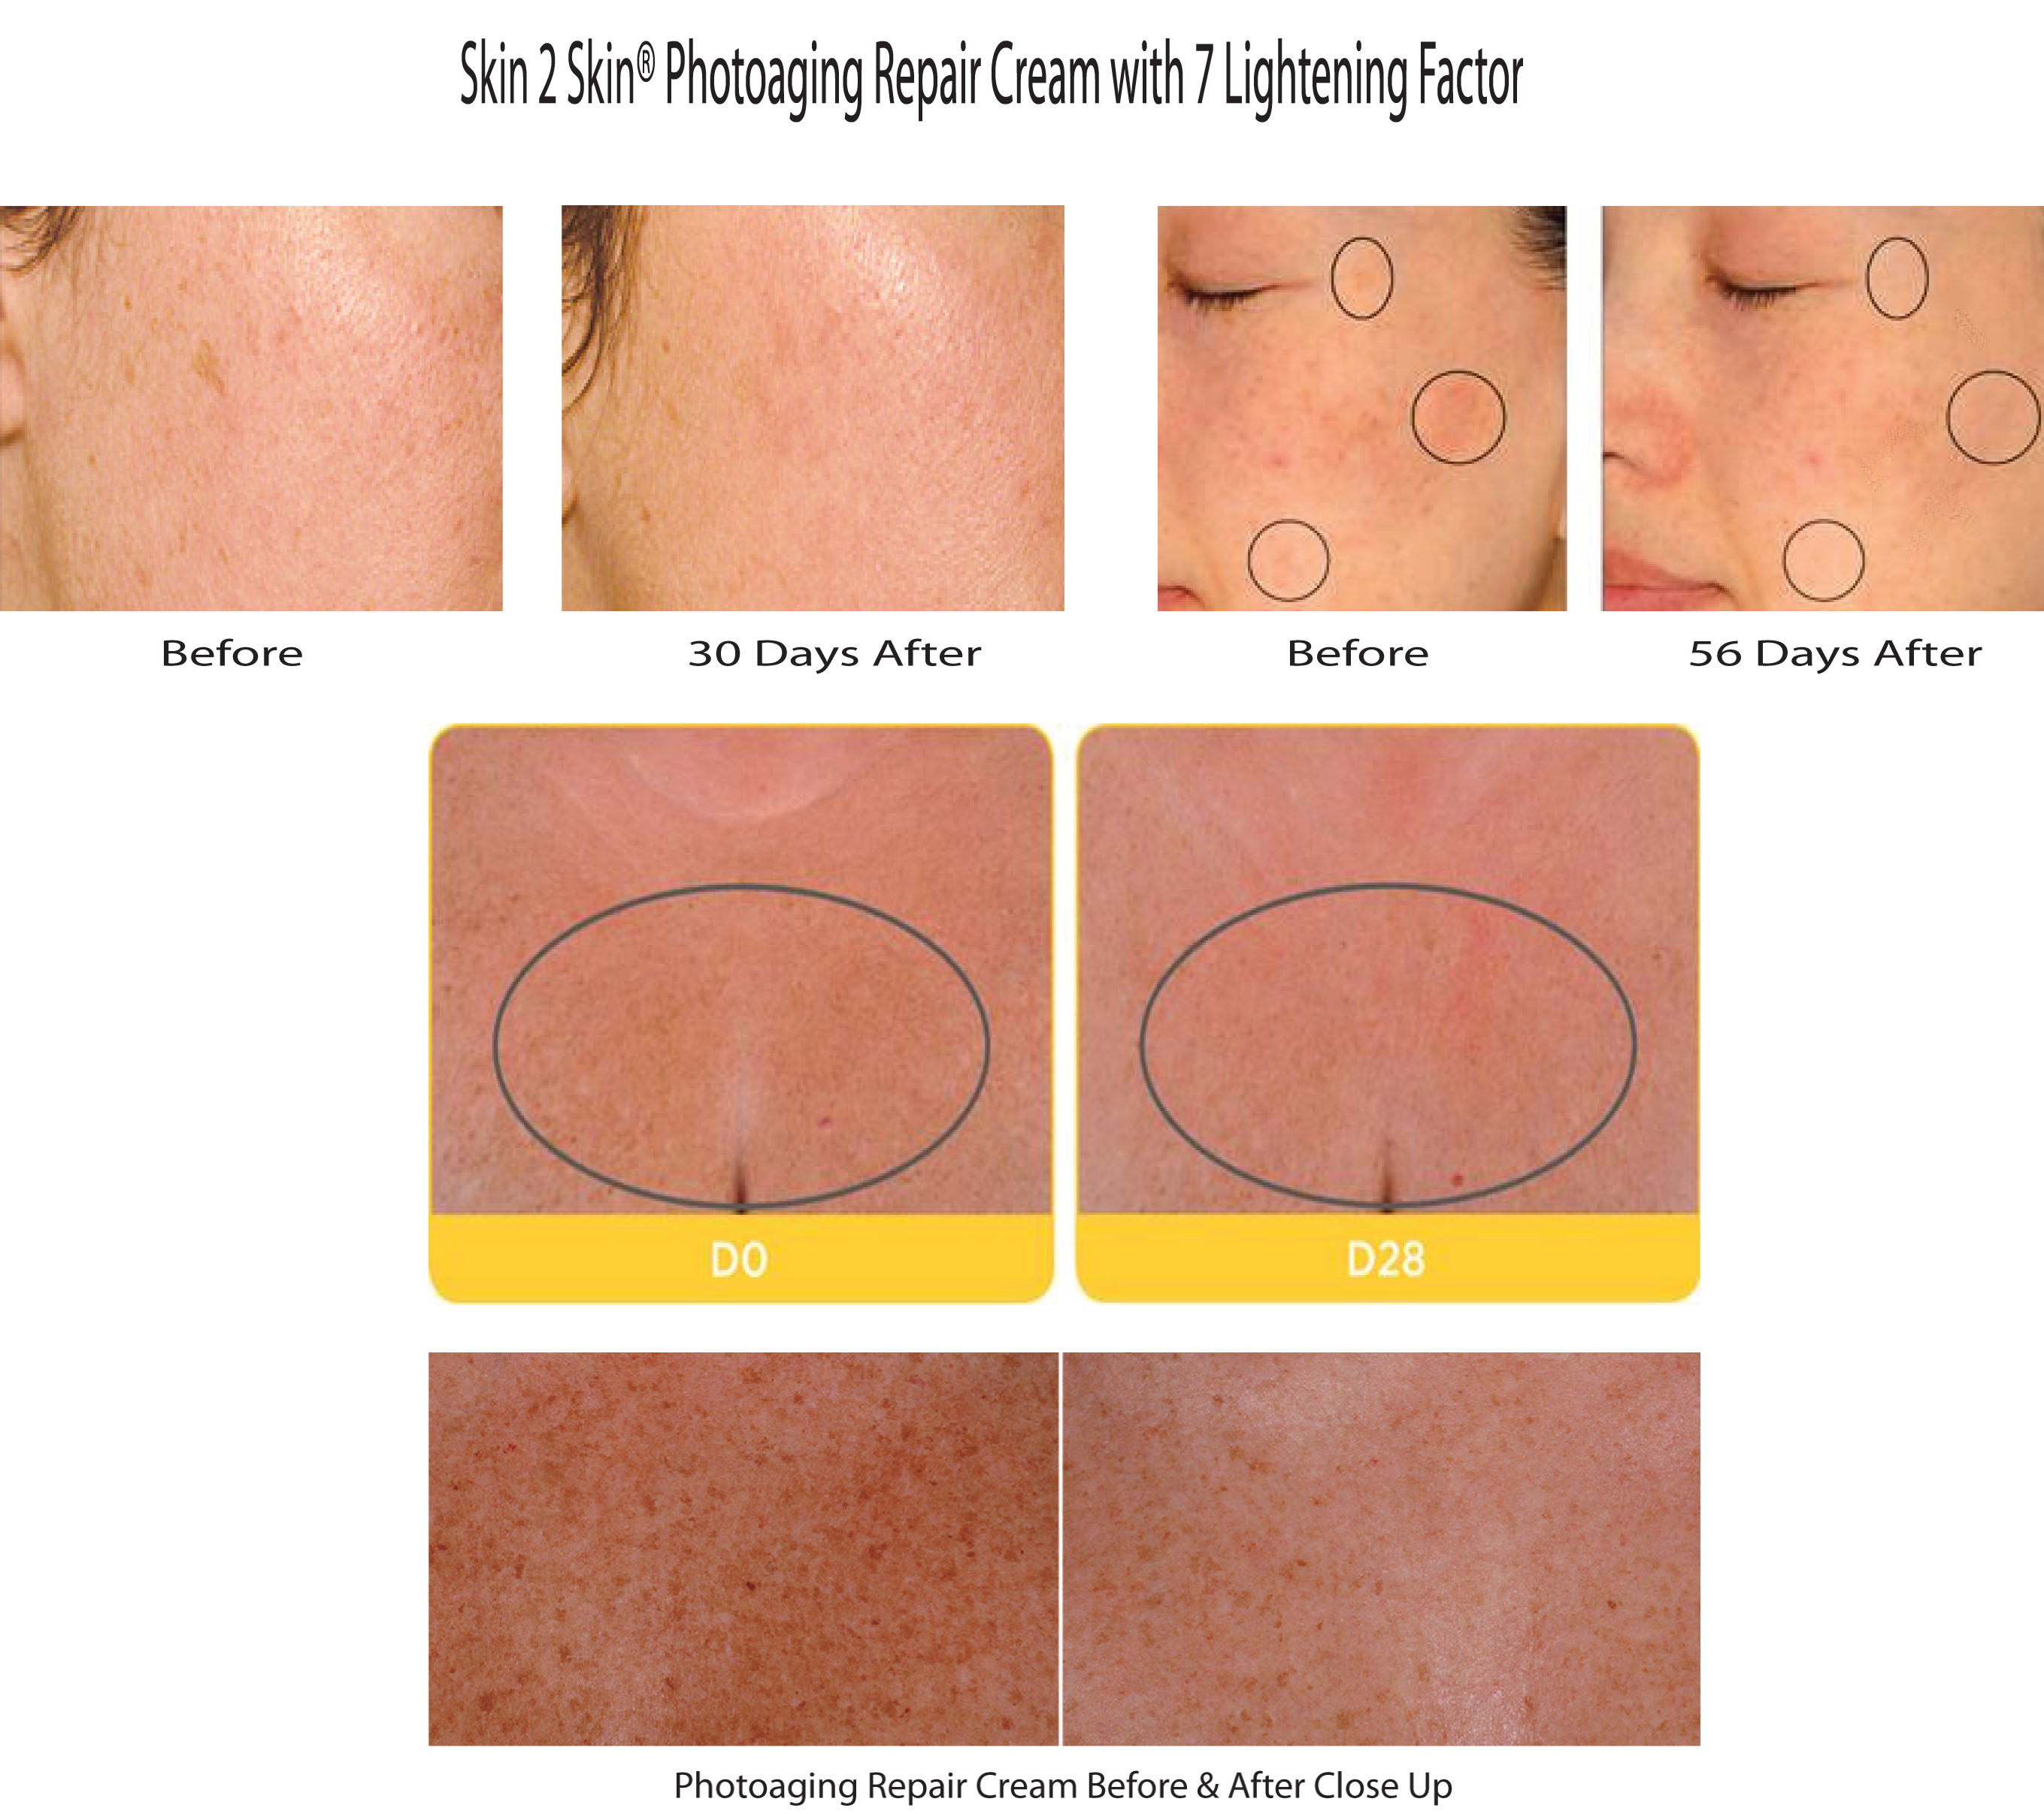 Skin 2 Skin's Photoaging Repair Cream 7-L Complex Before & After